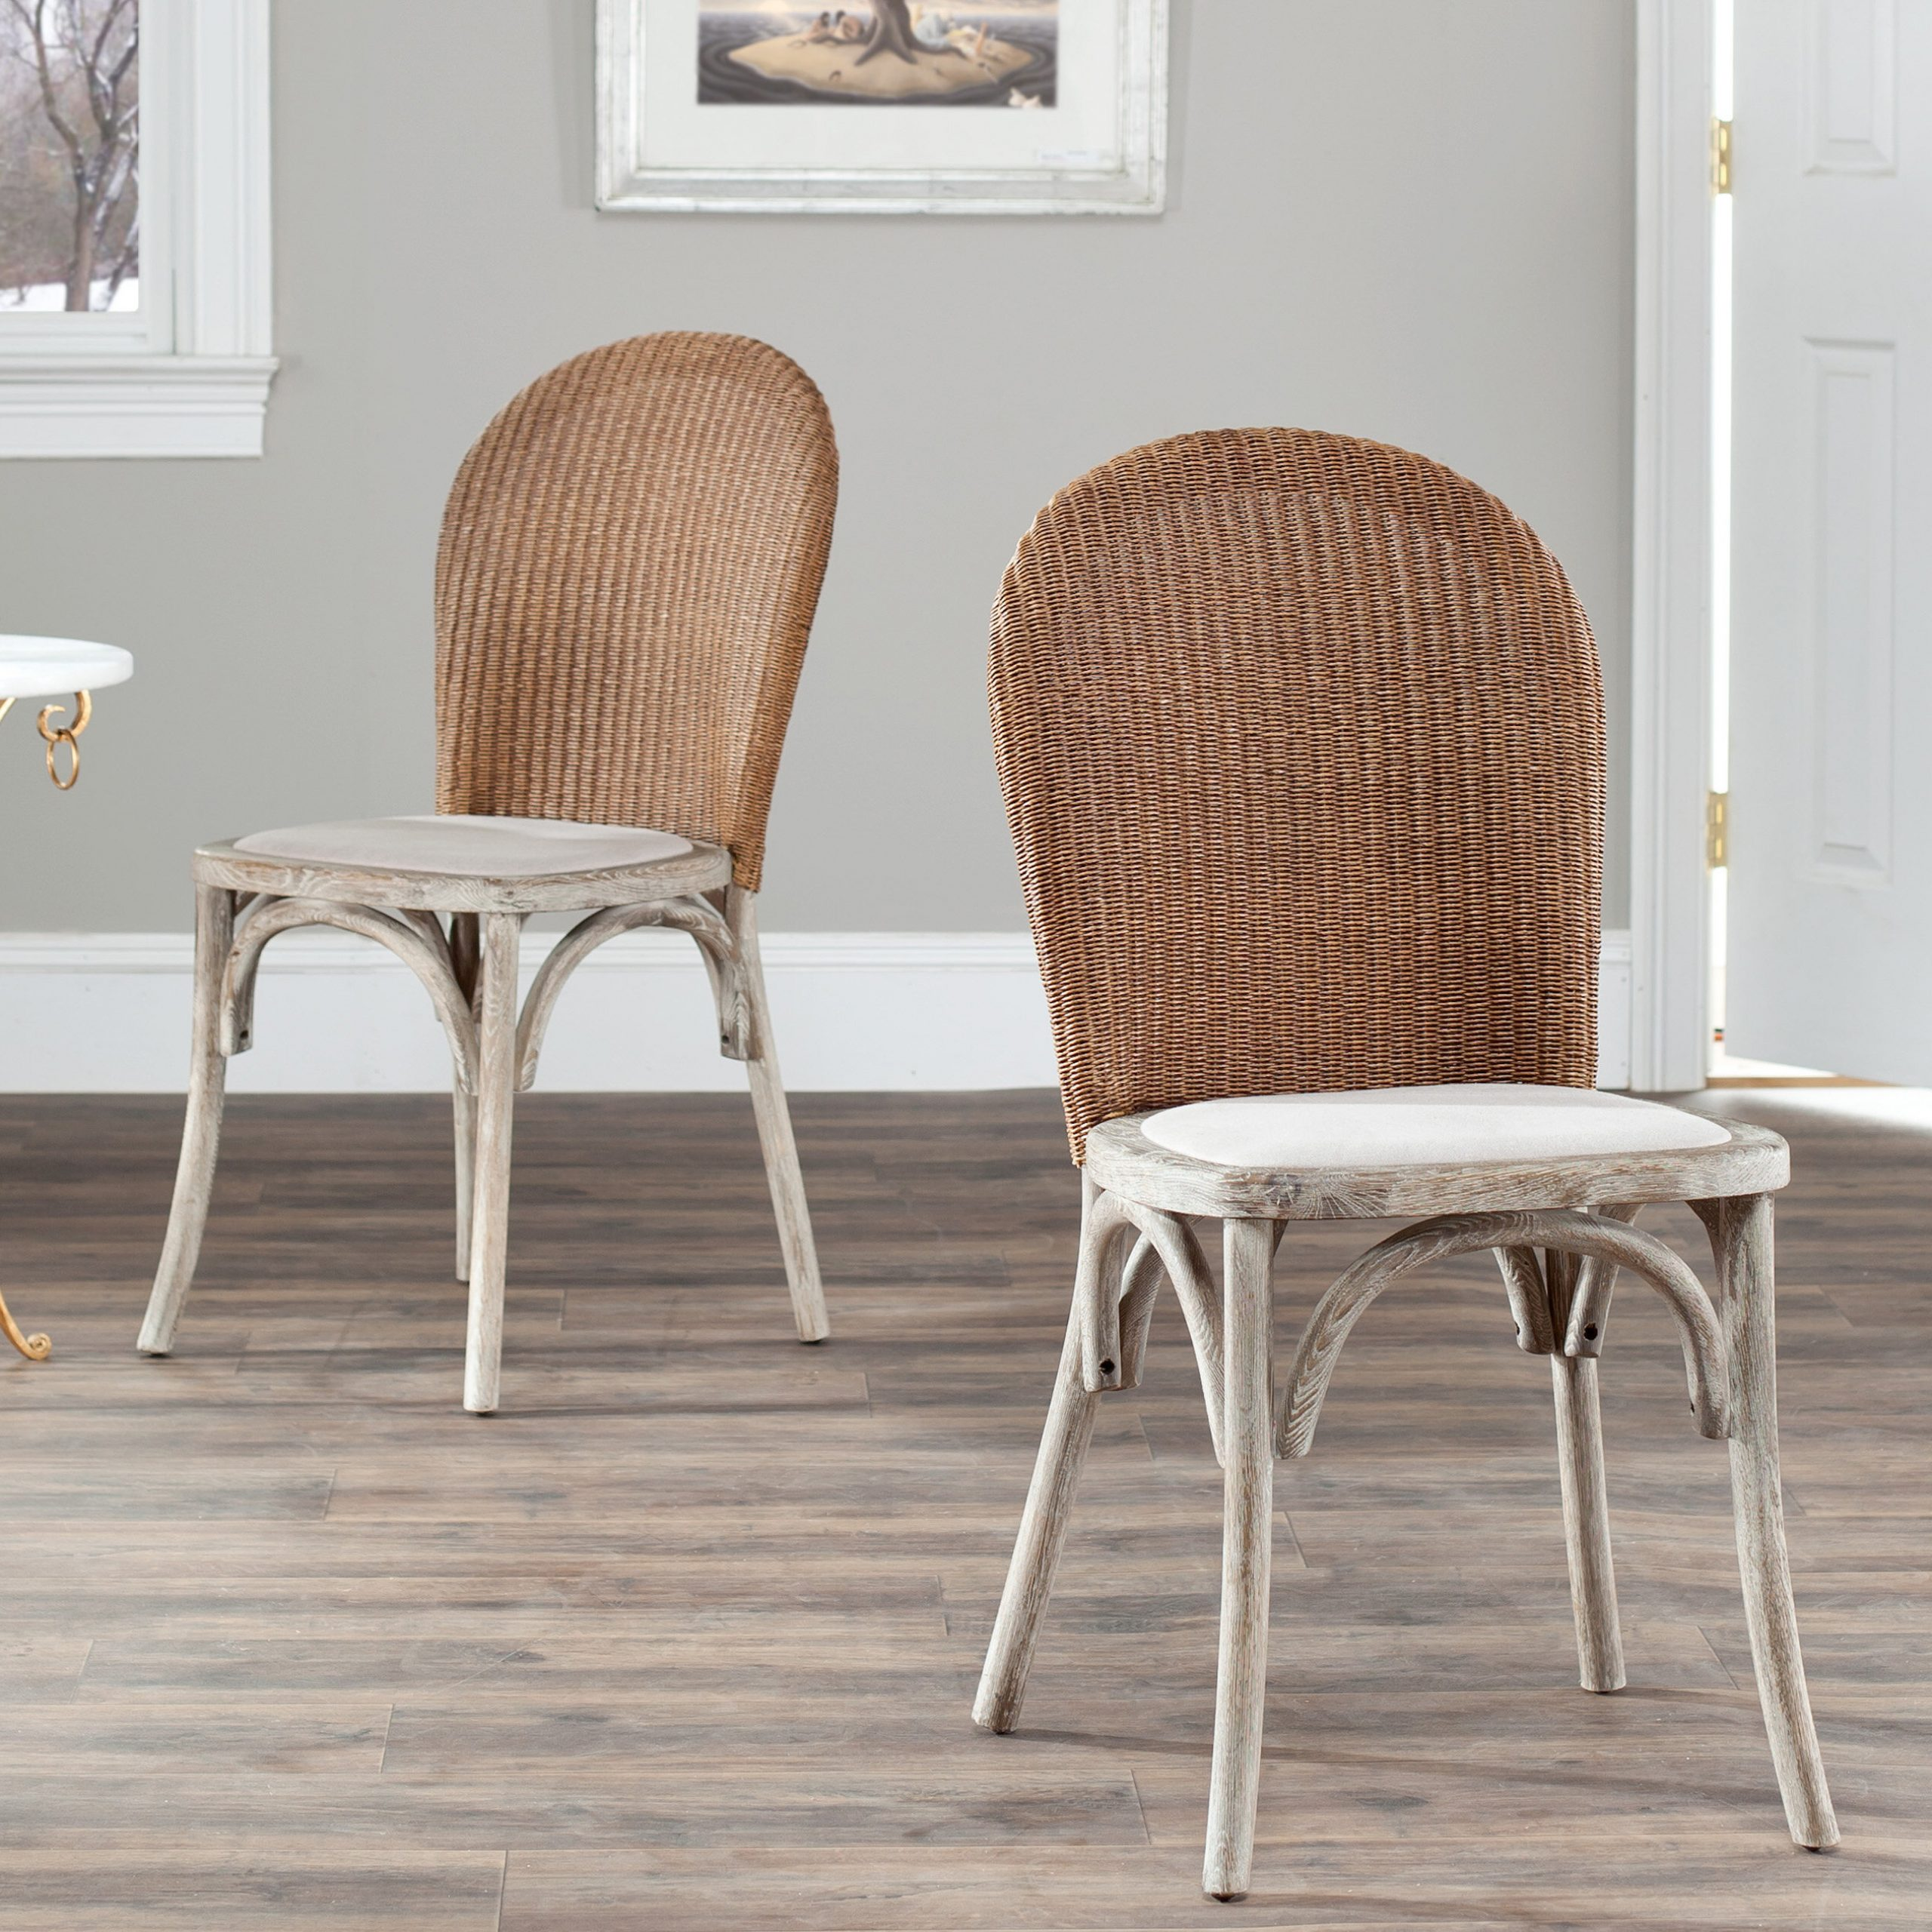 Bob Stripe Upholstered Dining Chairs (set Of 2) Throughout Most Current Coastal Dining Chairs (View 14 of 20)